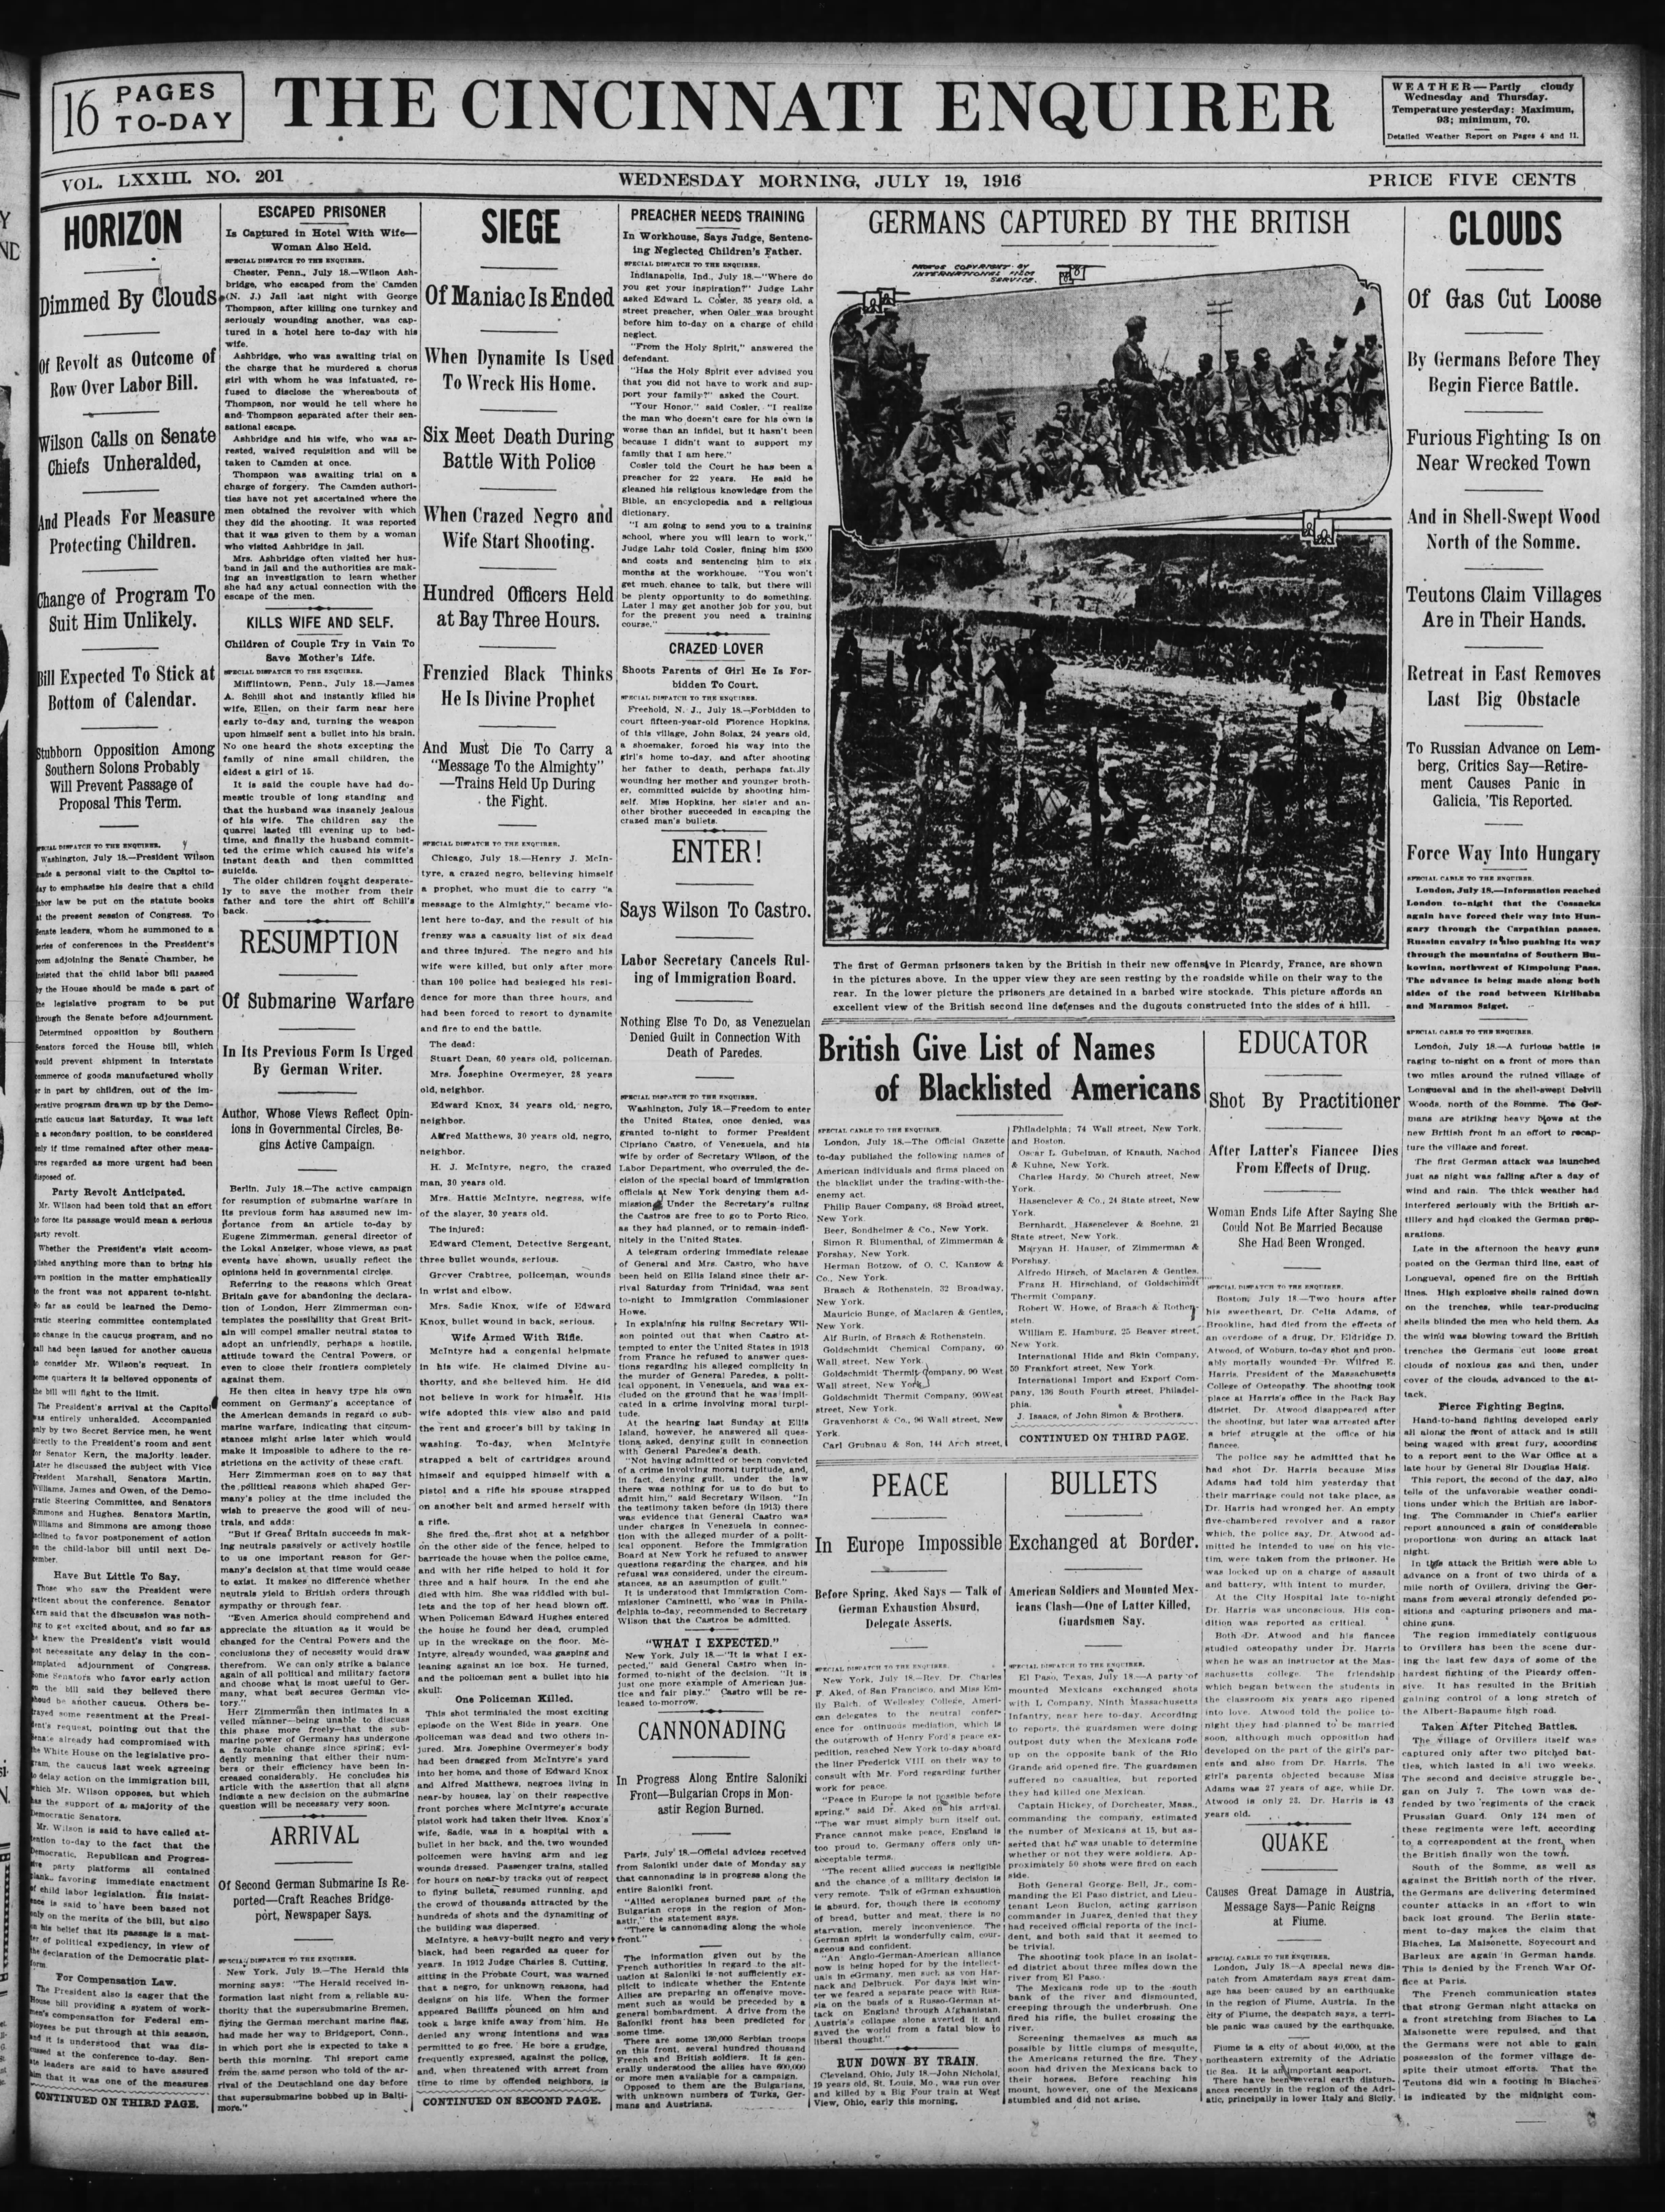 100 Years Ago Today_The_Cincinnati_Enquirer_Wed__Jul_19__1916_